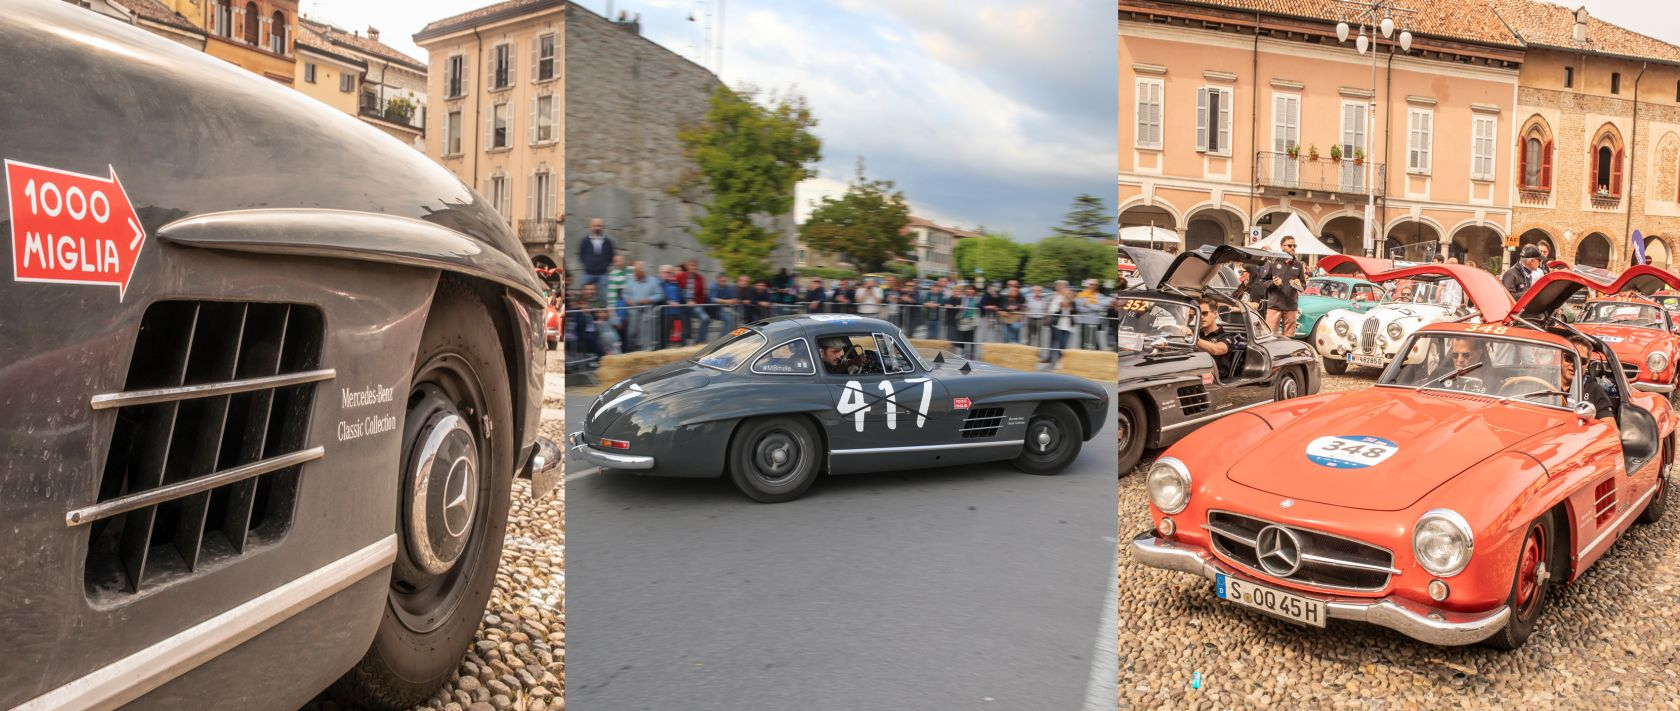 "Mercedes-Benz 300 SL ""Gullwing"" at the 1000 Miglia 2018."